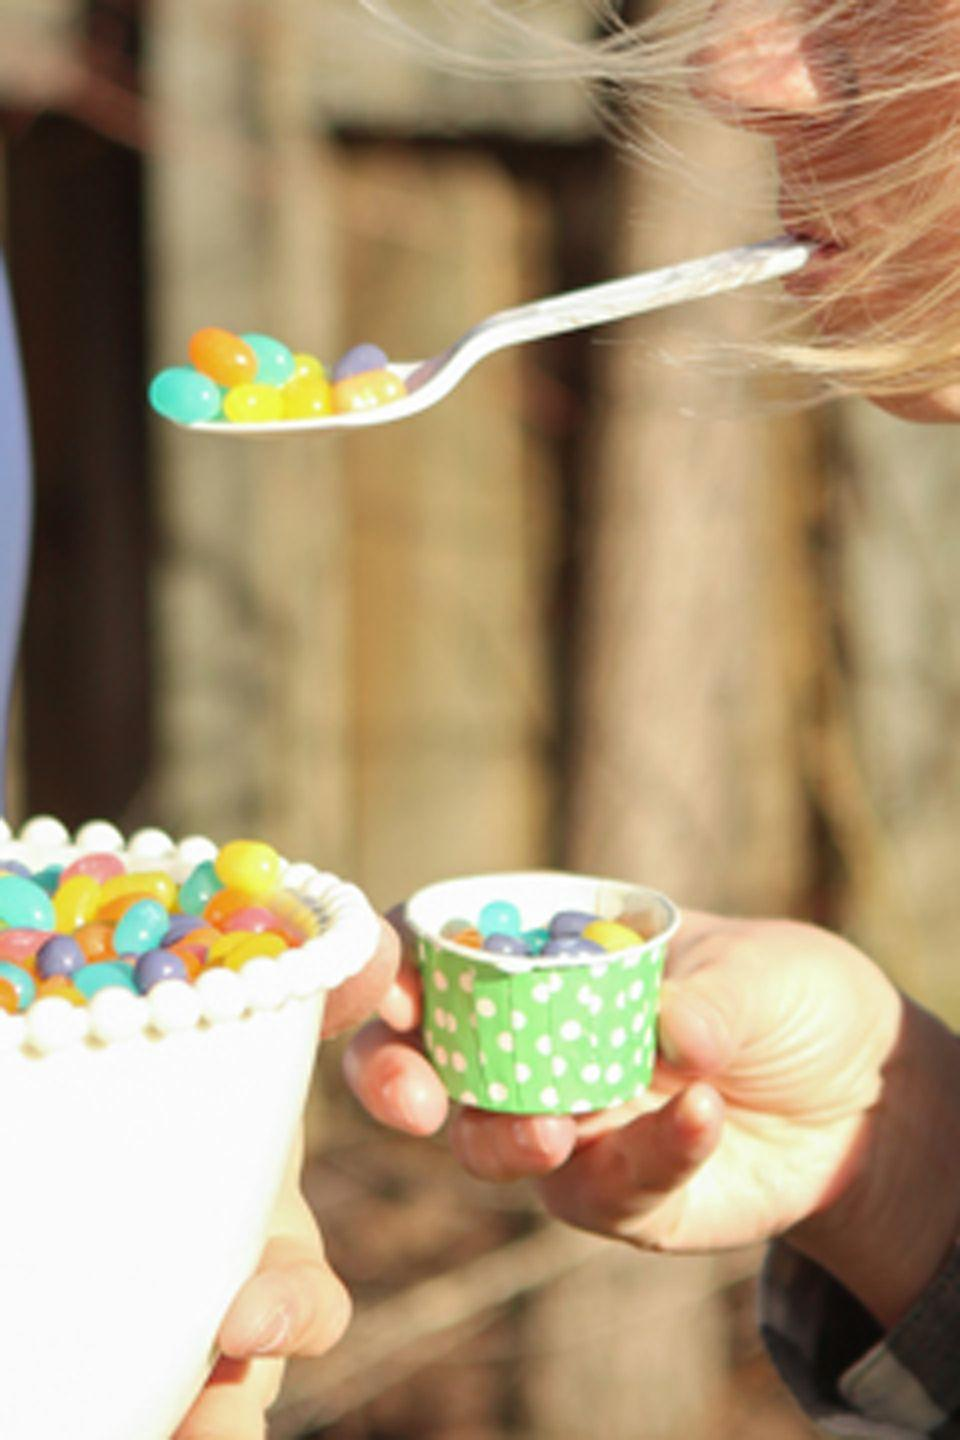 """<p>This game is like an egg and spoon race, but with Easter candy. Prep a bowl full of jelly beans and divide kids into teams. Give each kid a spoon to hold in his or her mouth. Each team has to transfer the jelly beans from the bowl to a nearby cup. The first team to fill their cup wins!</p><p><em>Get the tutorial at <a href=""""http://www.playpartyplan.com/2015/04/12-fun-games-to-play-in-spring.html#_a5y_p=3605733"""" rel=""""nofollow noopener"""" target=""""_blank"""" data-ylk=""""slk:Play Party Plan"""" class=""""link rapid-noclick-resp"""">Play Party Plan</a>.</em></p>"""